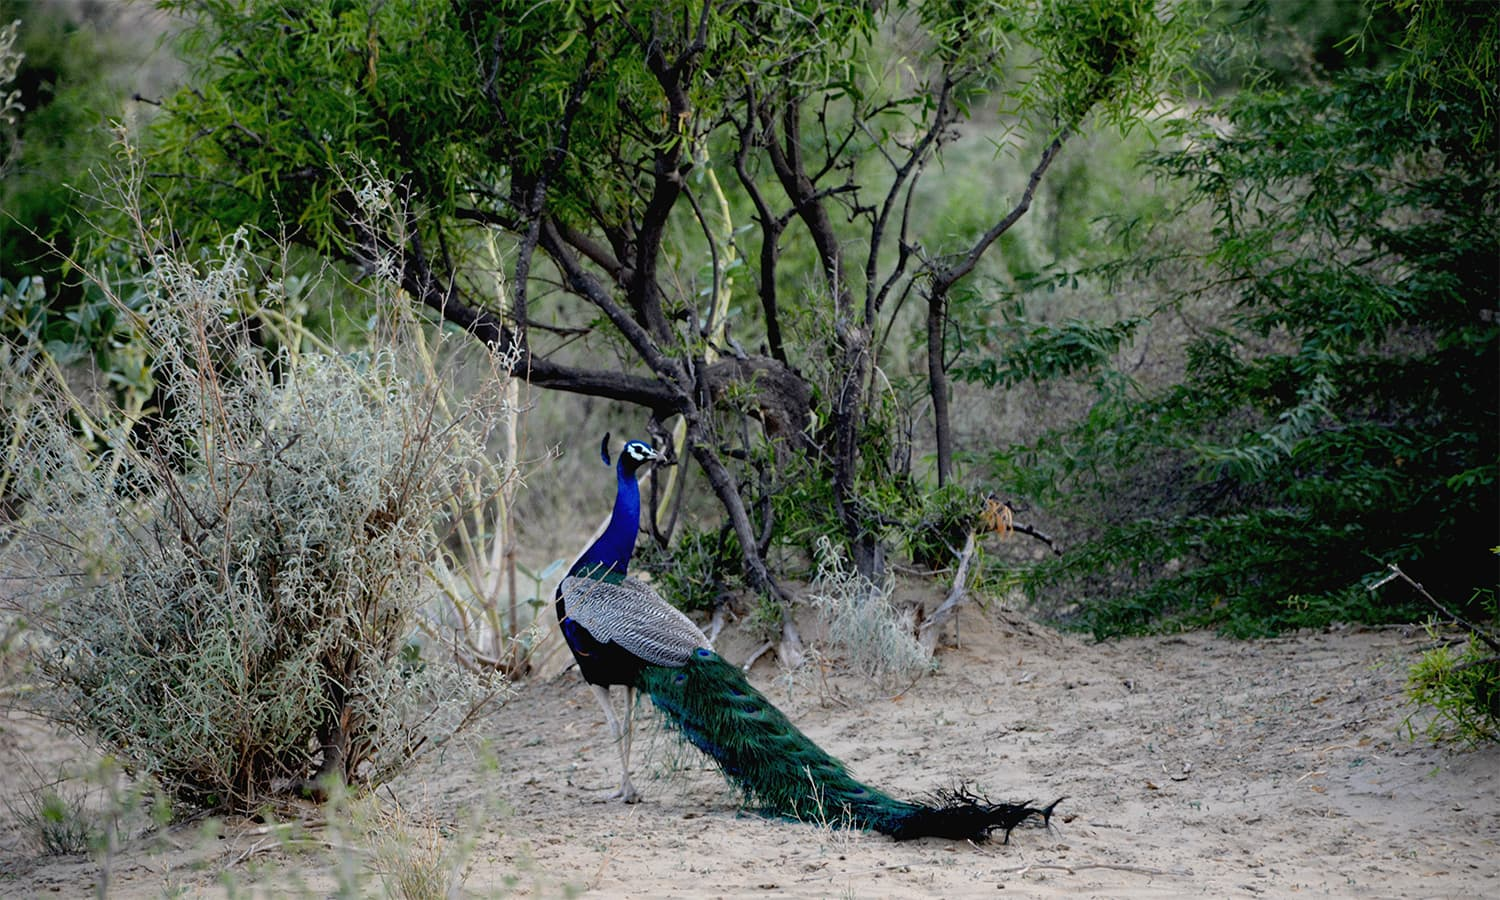 Thar is home to many wildlife species including blue peacocks and antelopes.—Photo by Amar Guriro